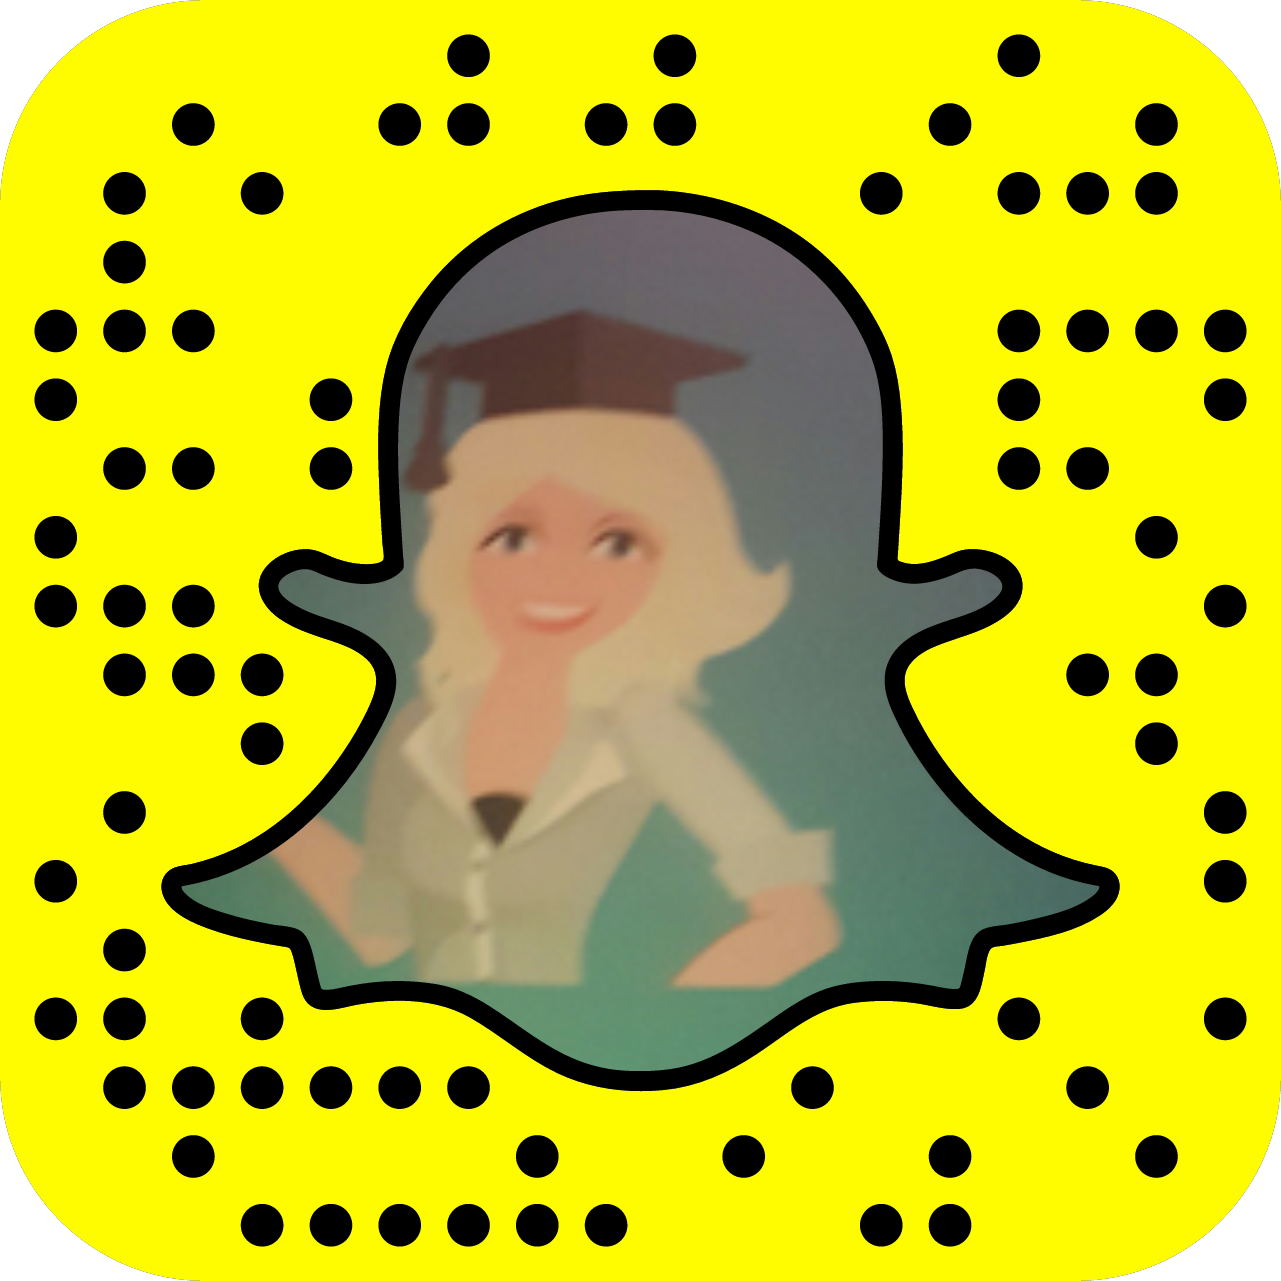 https://essentialfrench.ie/wp-content/uploads/2016-08-31-snapchat-cut-essentialfrench.png on Snapchat